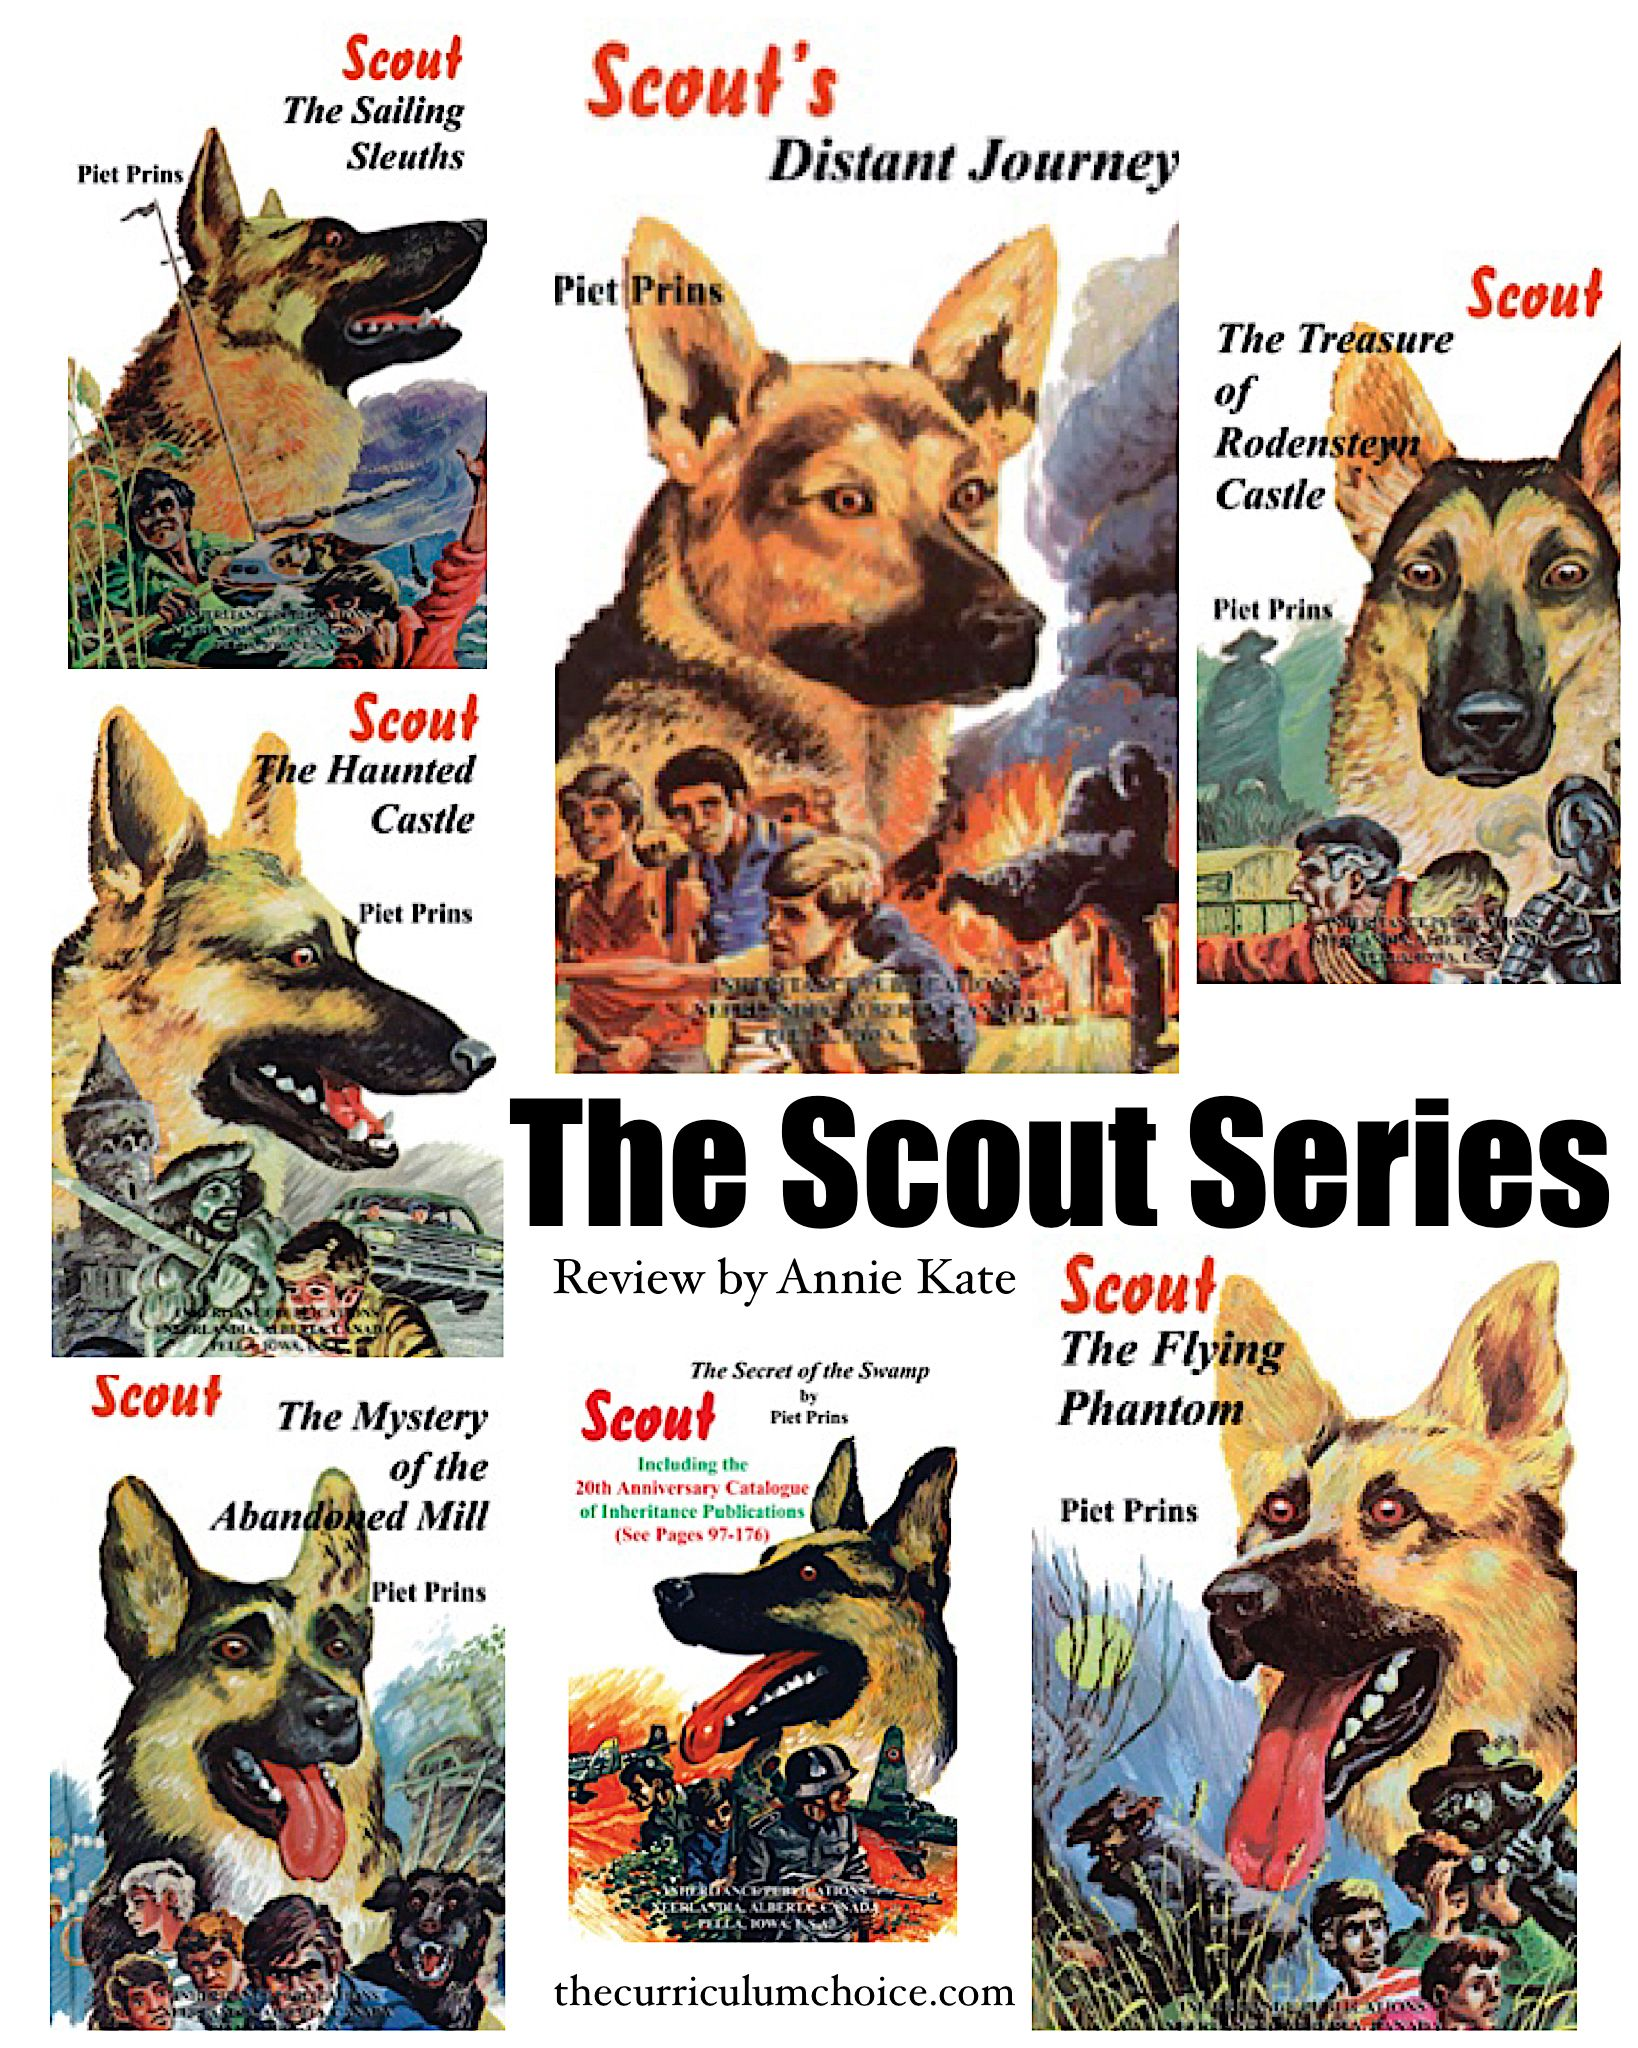 Teenaged Tom, his amazing dog Scout, and his two friends get themselves into many dangerous adventures in Piet Prins's seven-book Scout series.